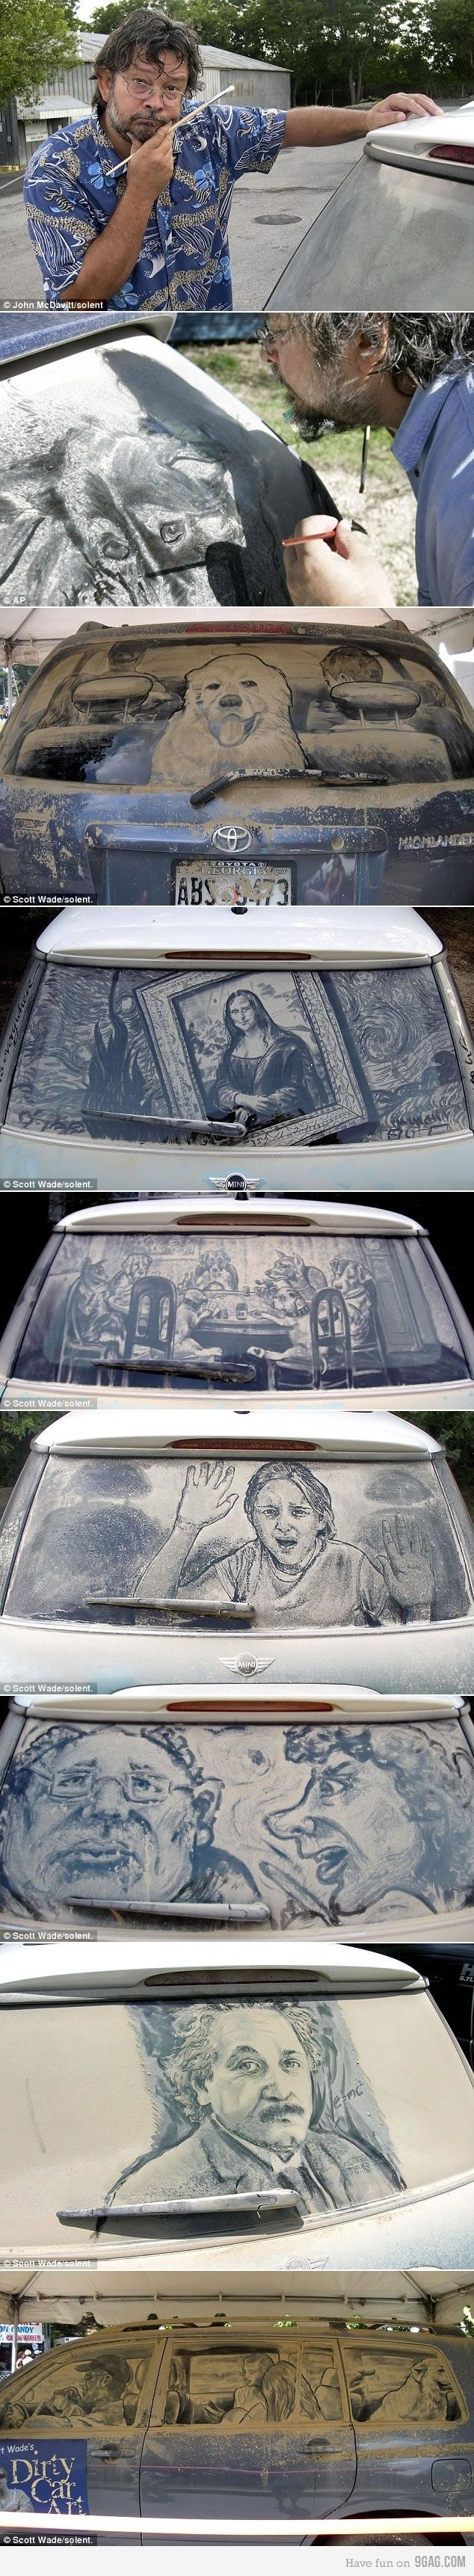 Amazing artwork created in dirty vehicle windows